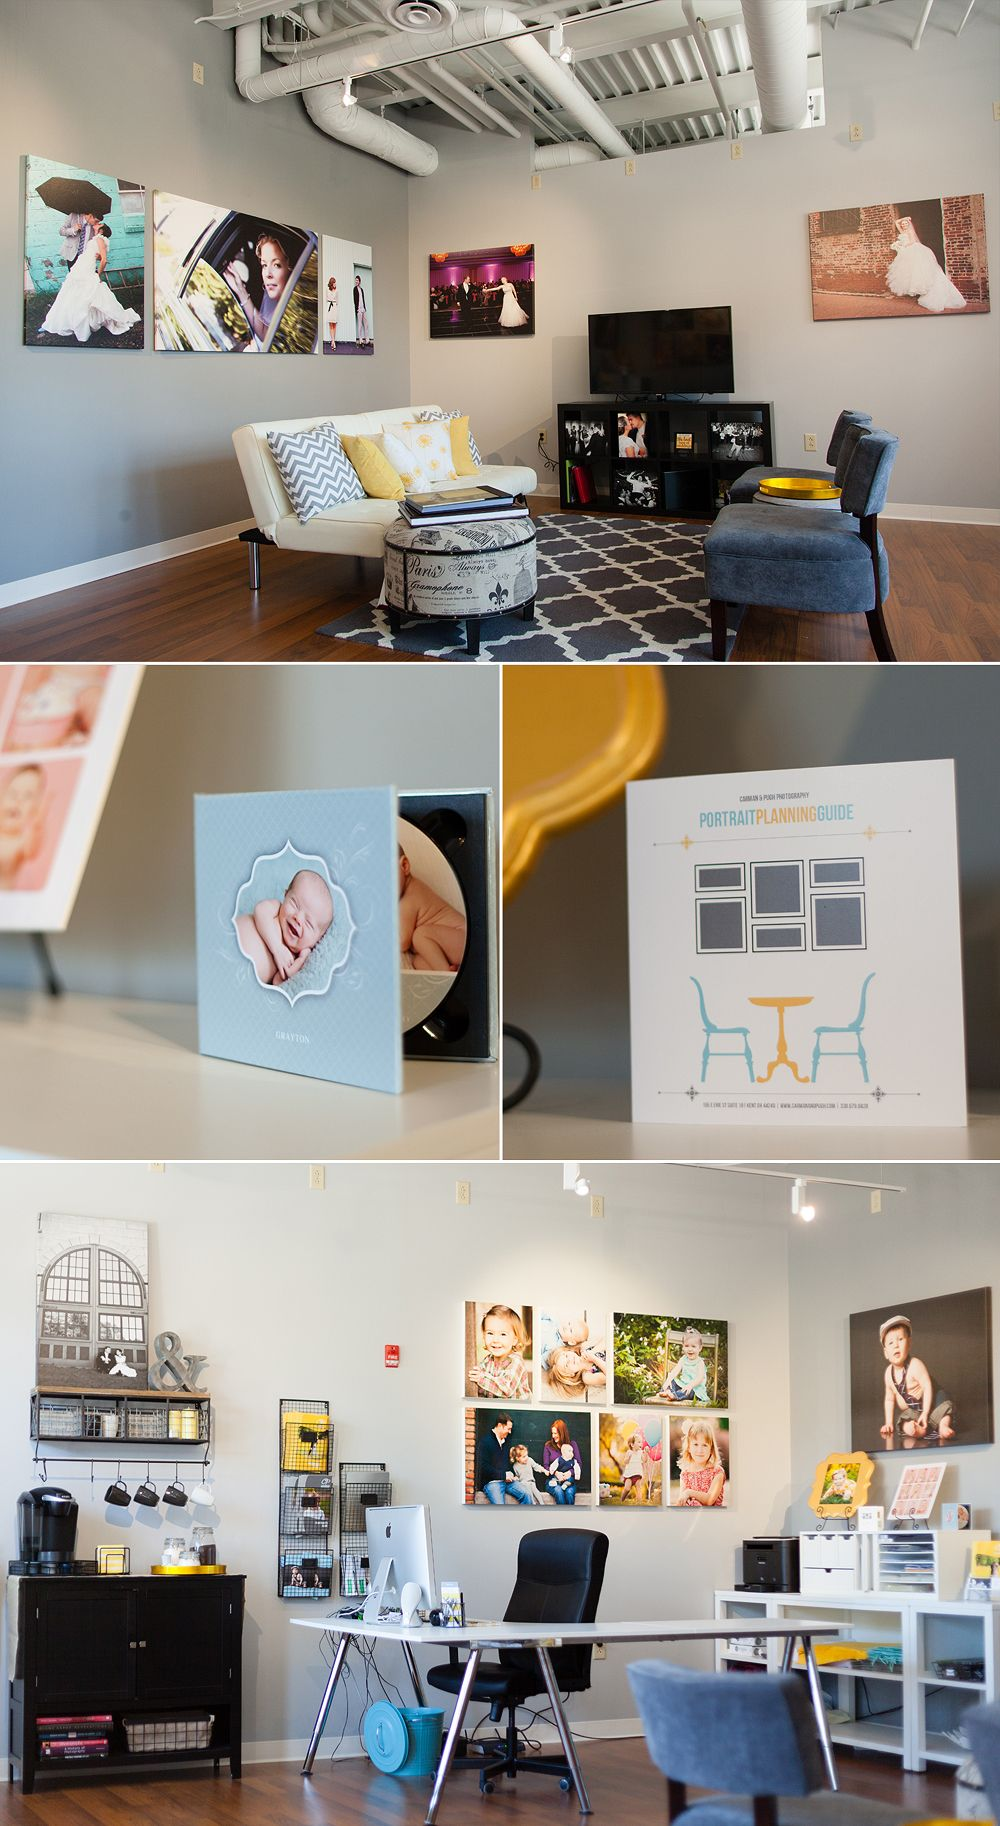 Take A Tour Of Our New Photography Studio Home Studio Photography Photography Studio Design Studio Photography